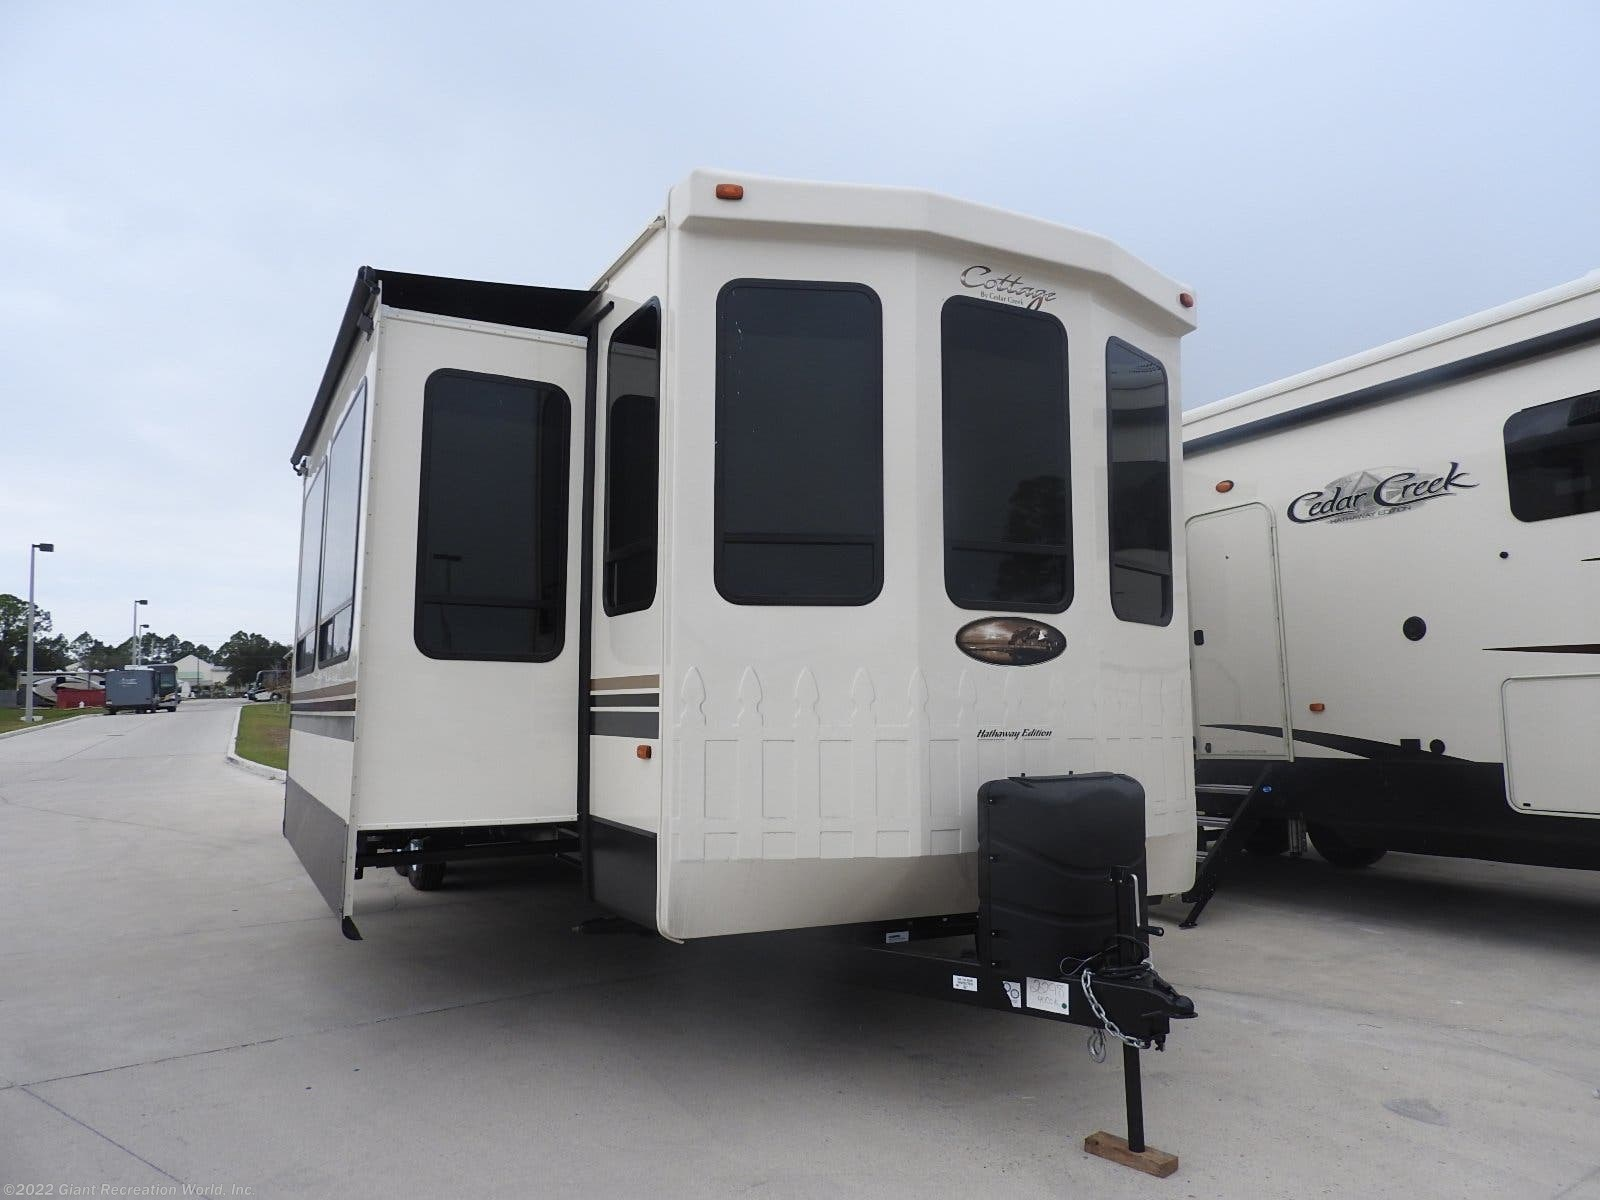 Outstanding 2019 Miscellaneous Rv Cedar Creek Cottage For Sale In Winter Home Interior And Landscaping Spoatsignezvosmurscom